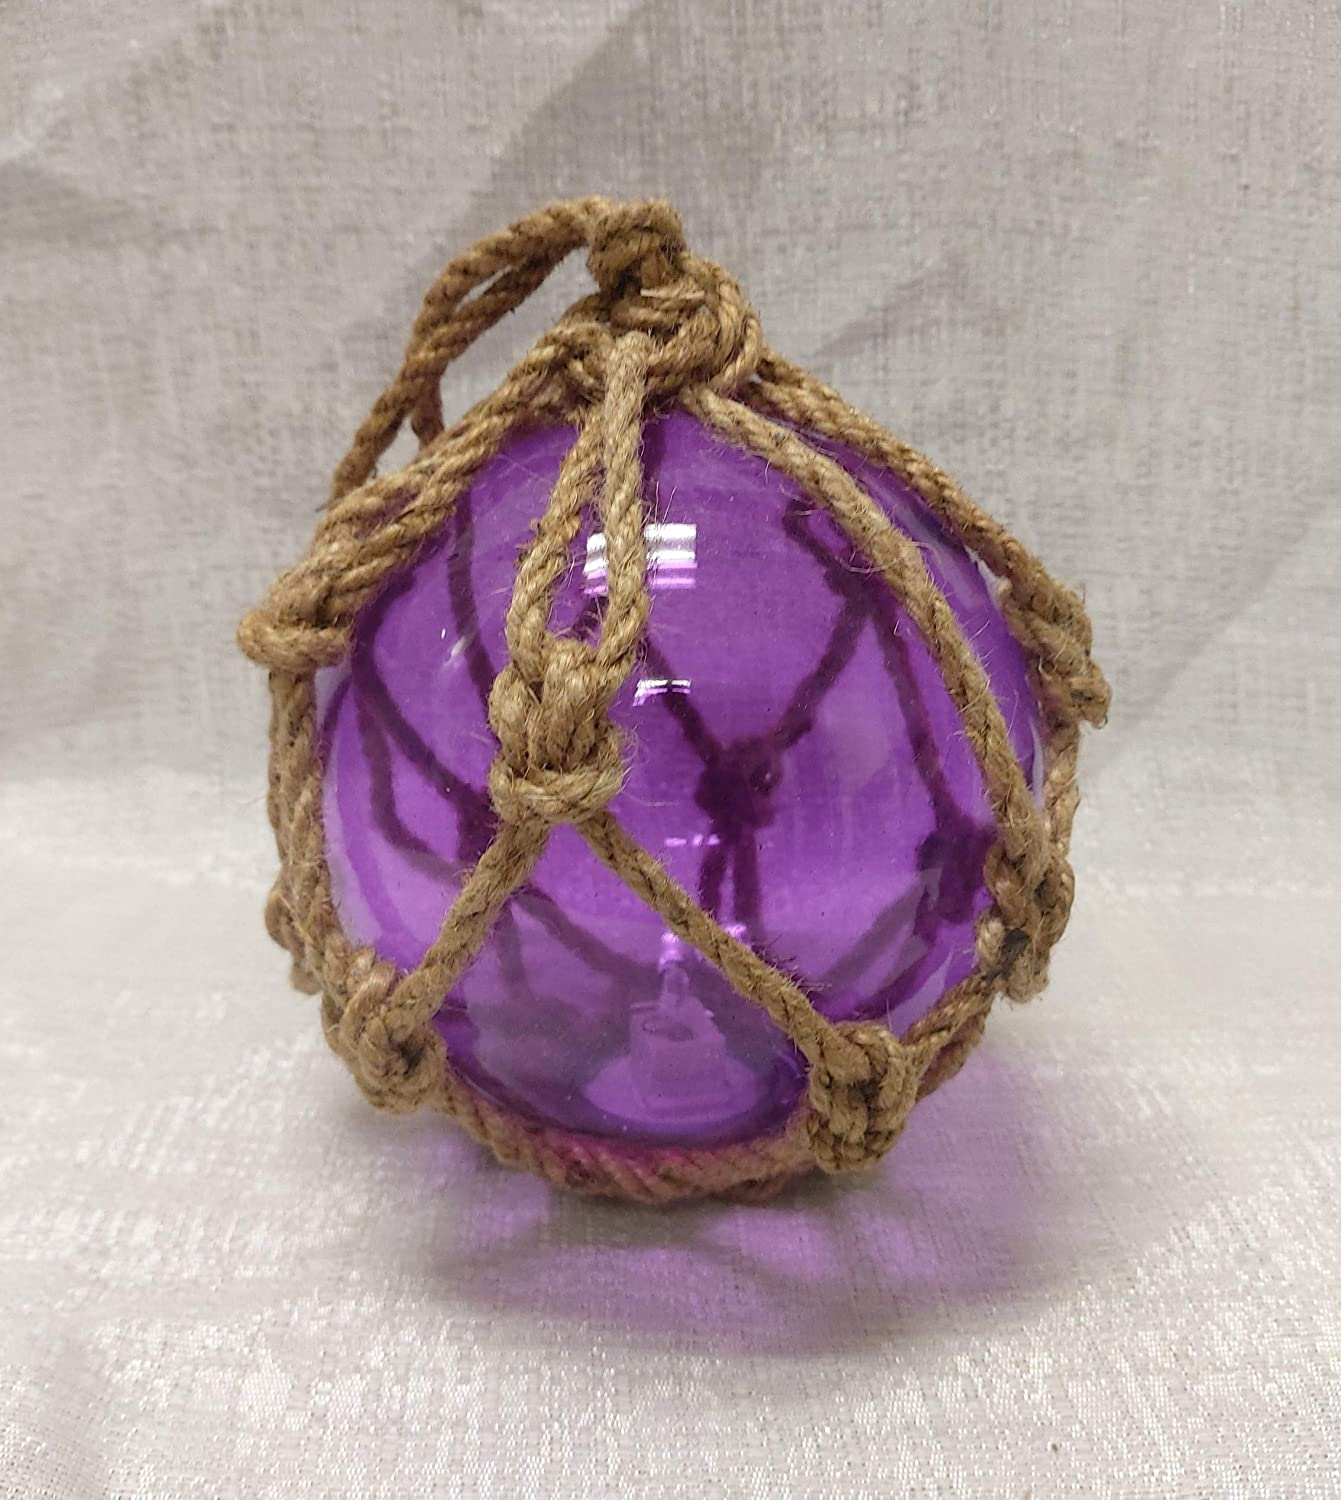 DRH Violet Japanese Fishing Glass Buoy - Glass Float Ball with LED Light - Bright Nautical Decor with Roped Net - Perfect Hanging Nautical Glass Buoy Gift for Art Lovers - 5 inches